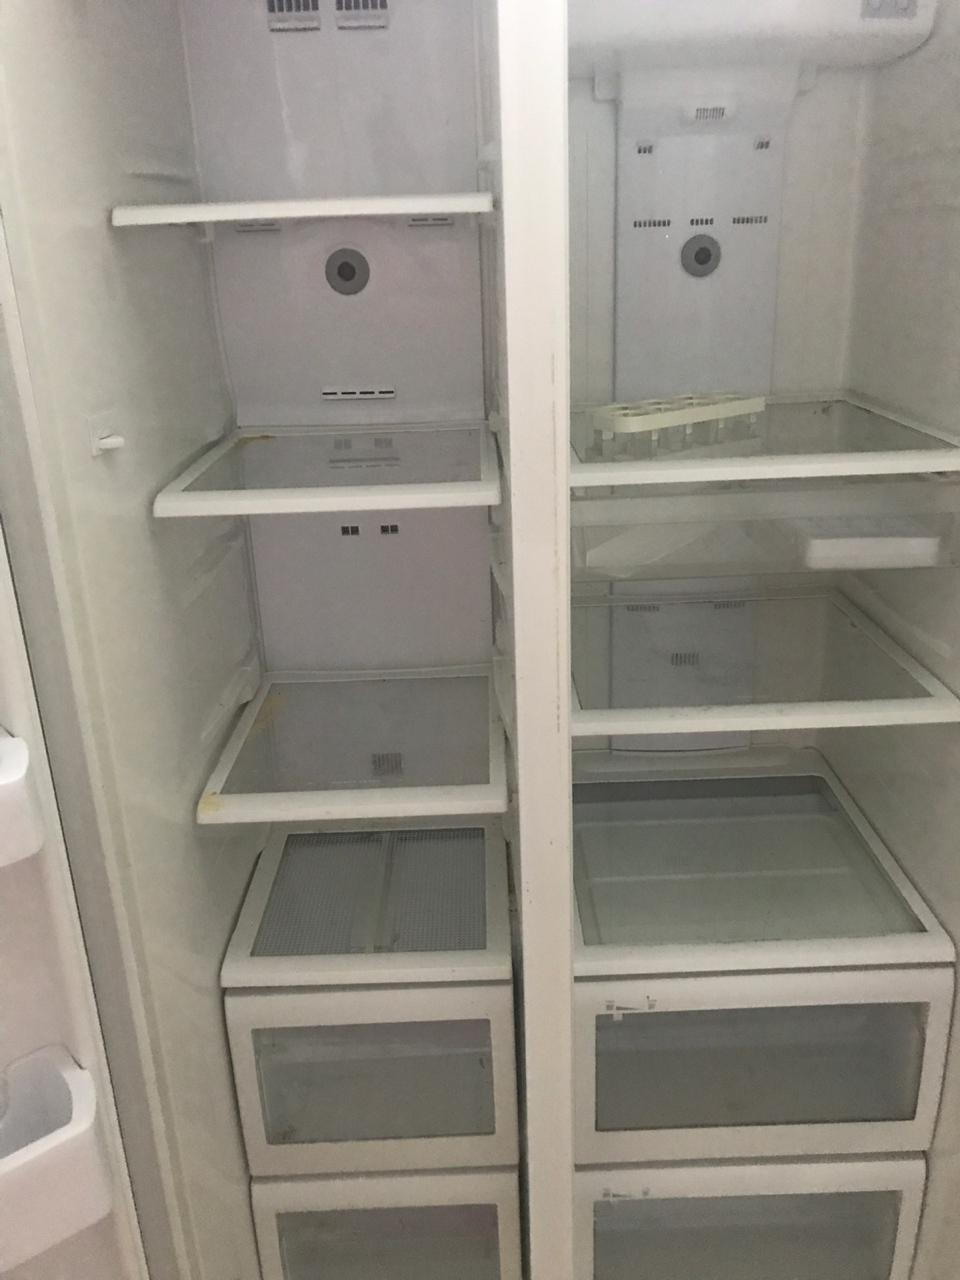 Side by side fridge and freezer